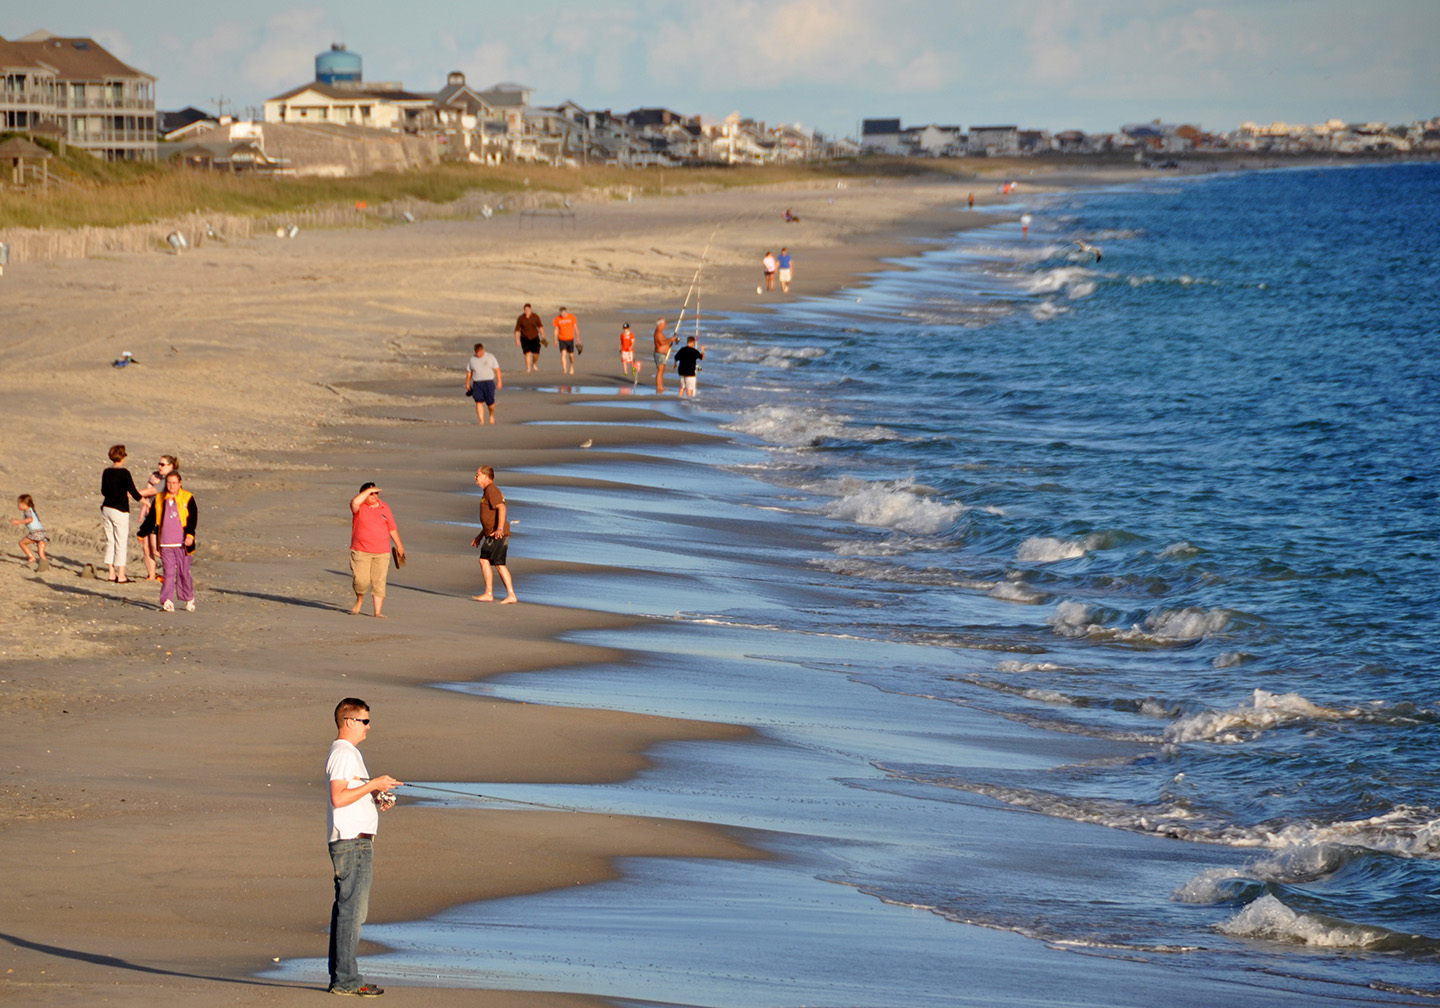 People relaxing and fishing on a beach in Atlantic Beach, NC